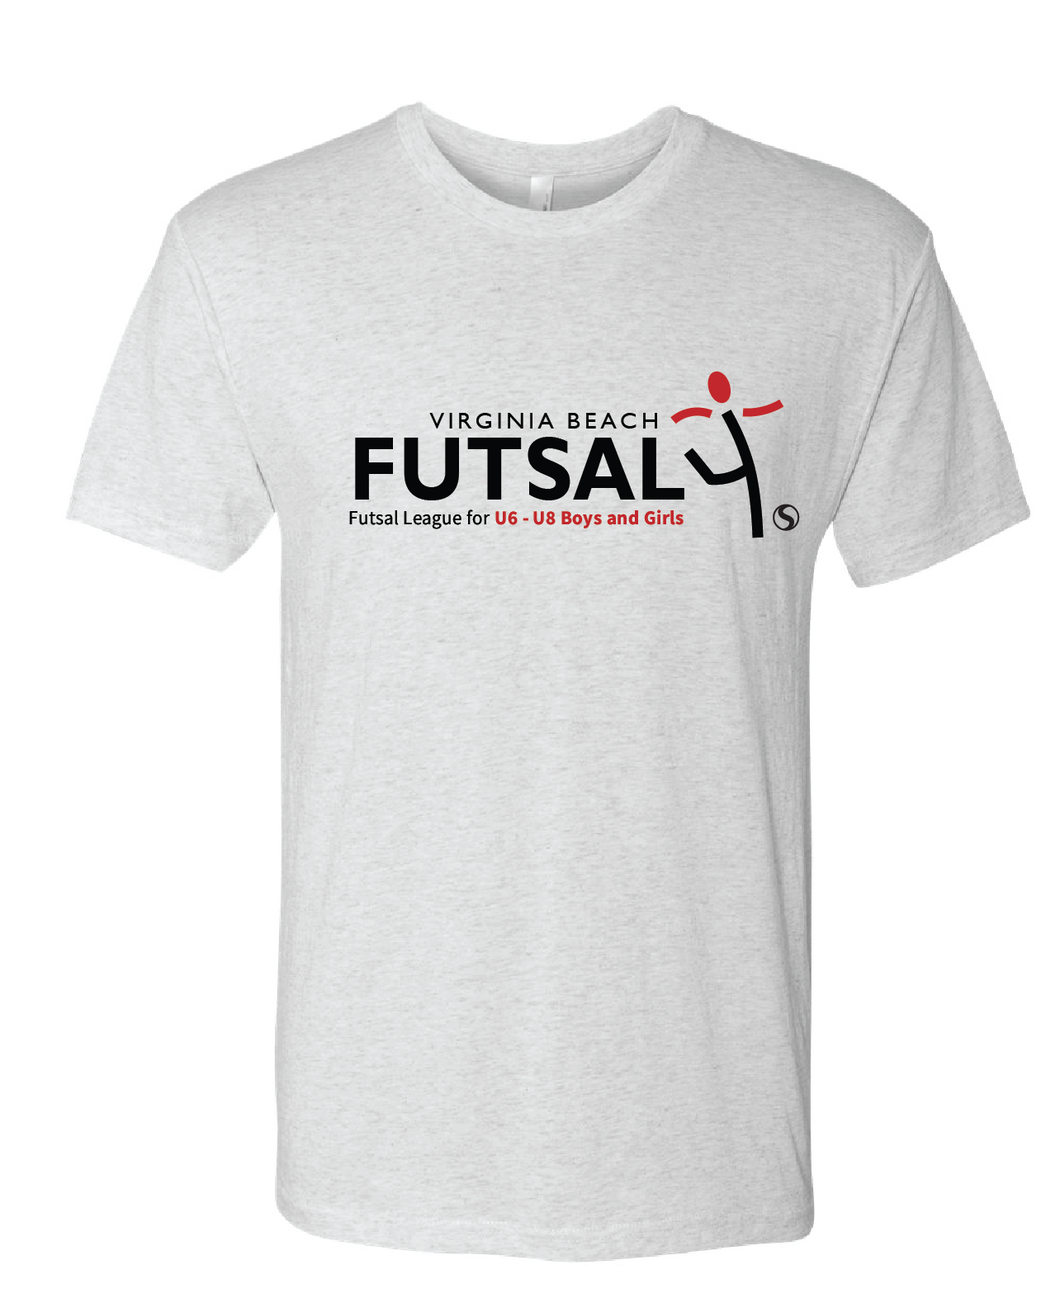 Youth Futsal 4's Cotton T-shirt / White / VBFutsal